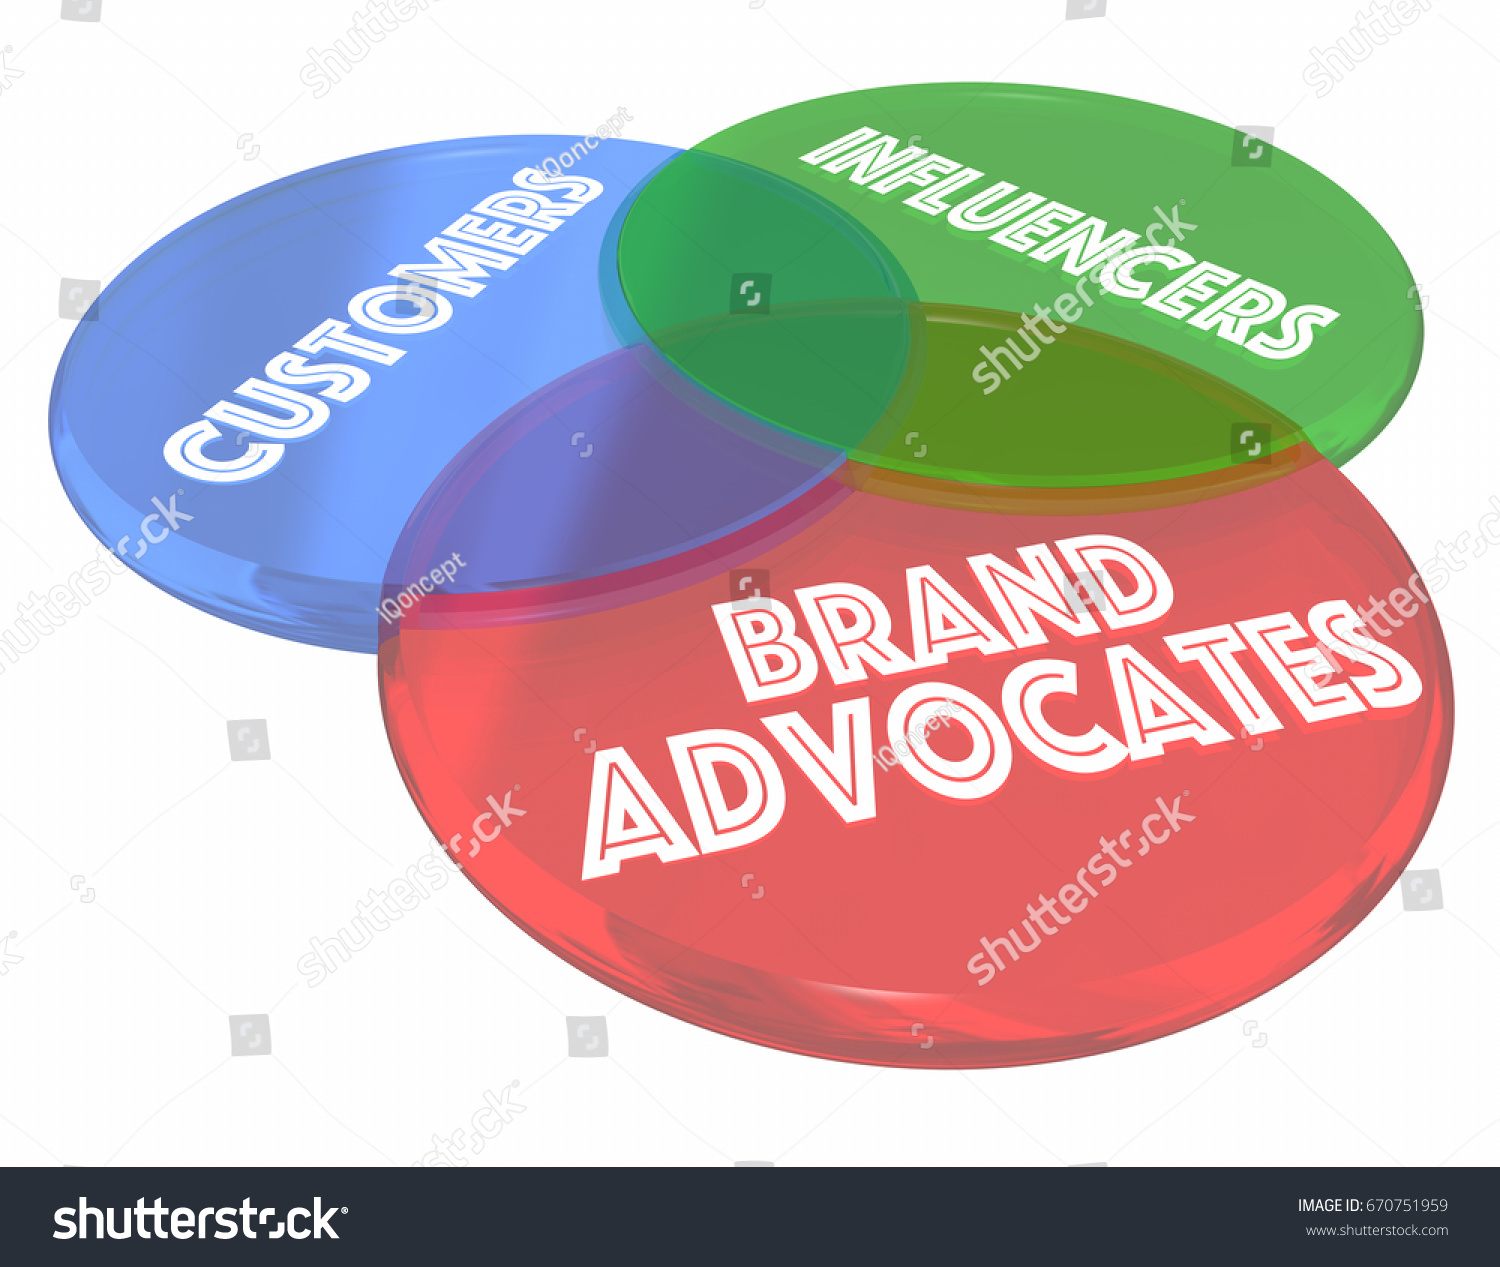 Brand advocates customers influencers venn diagram stock brand advocates customers influencers venn diagram 3d illustration pooptronica